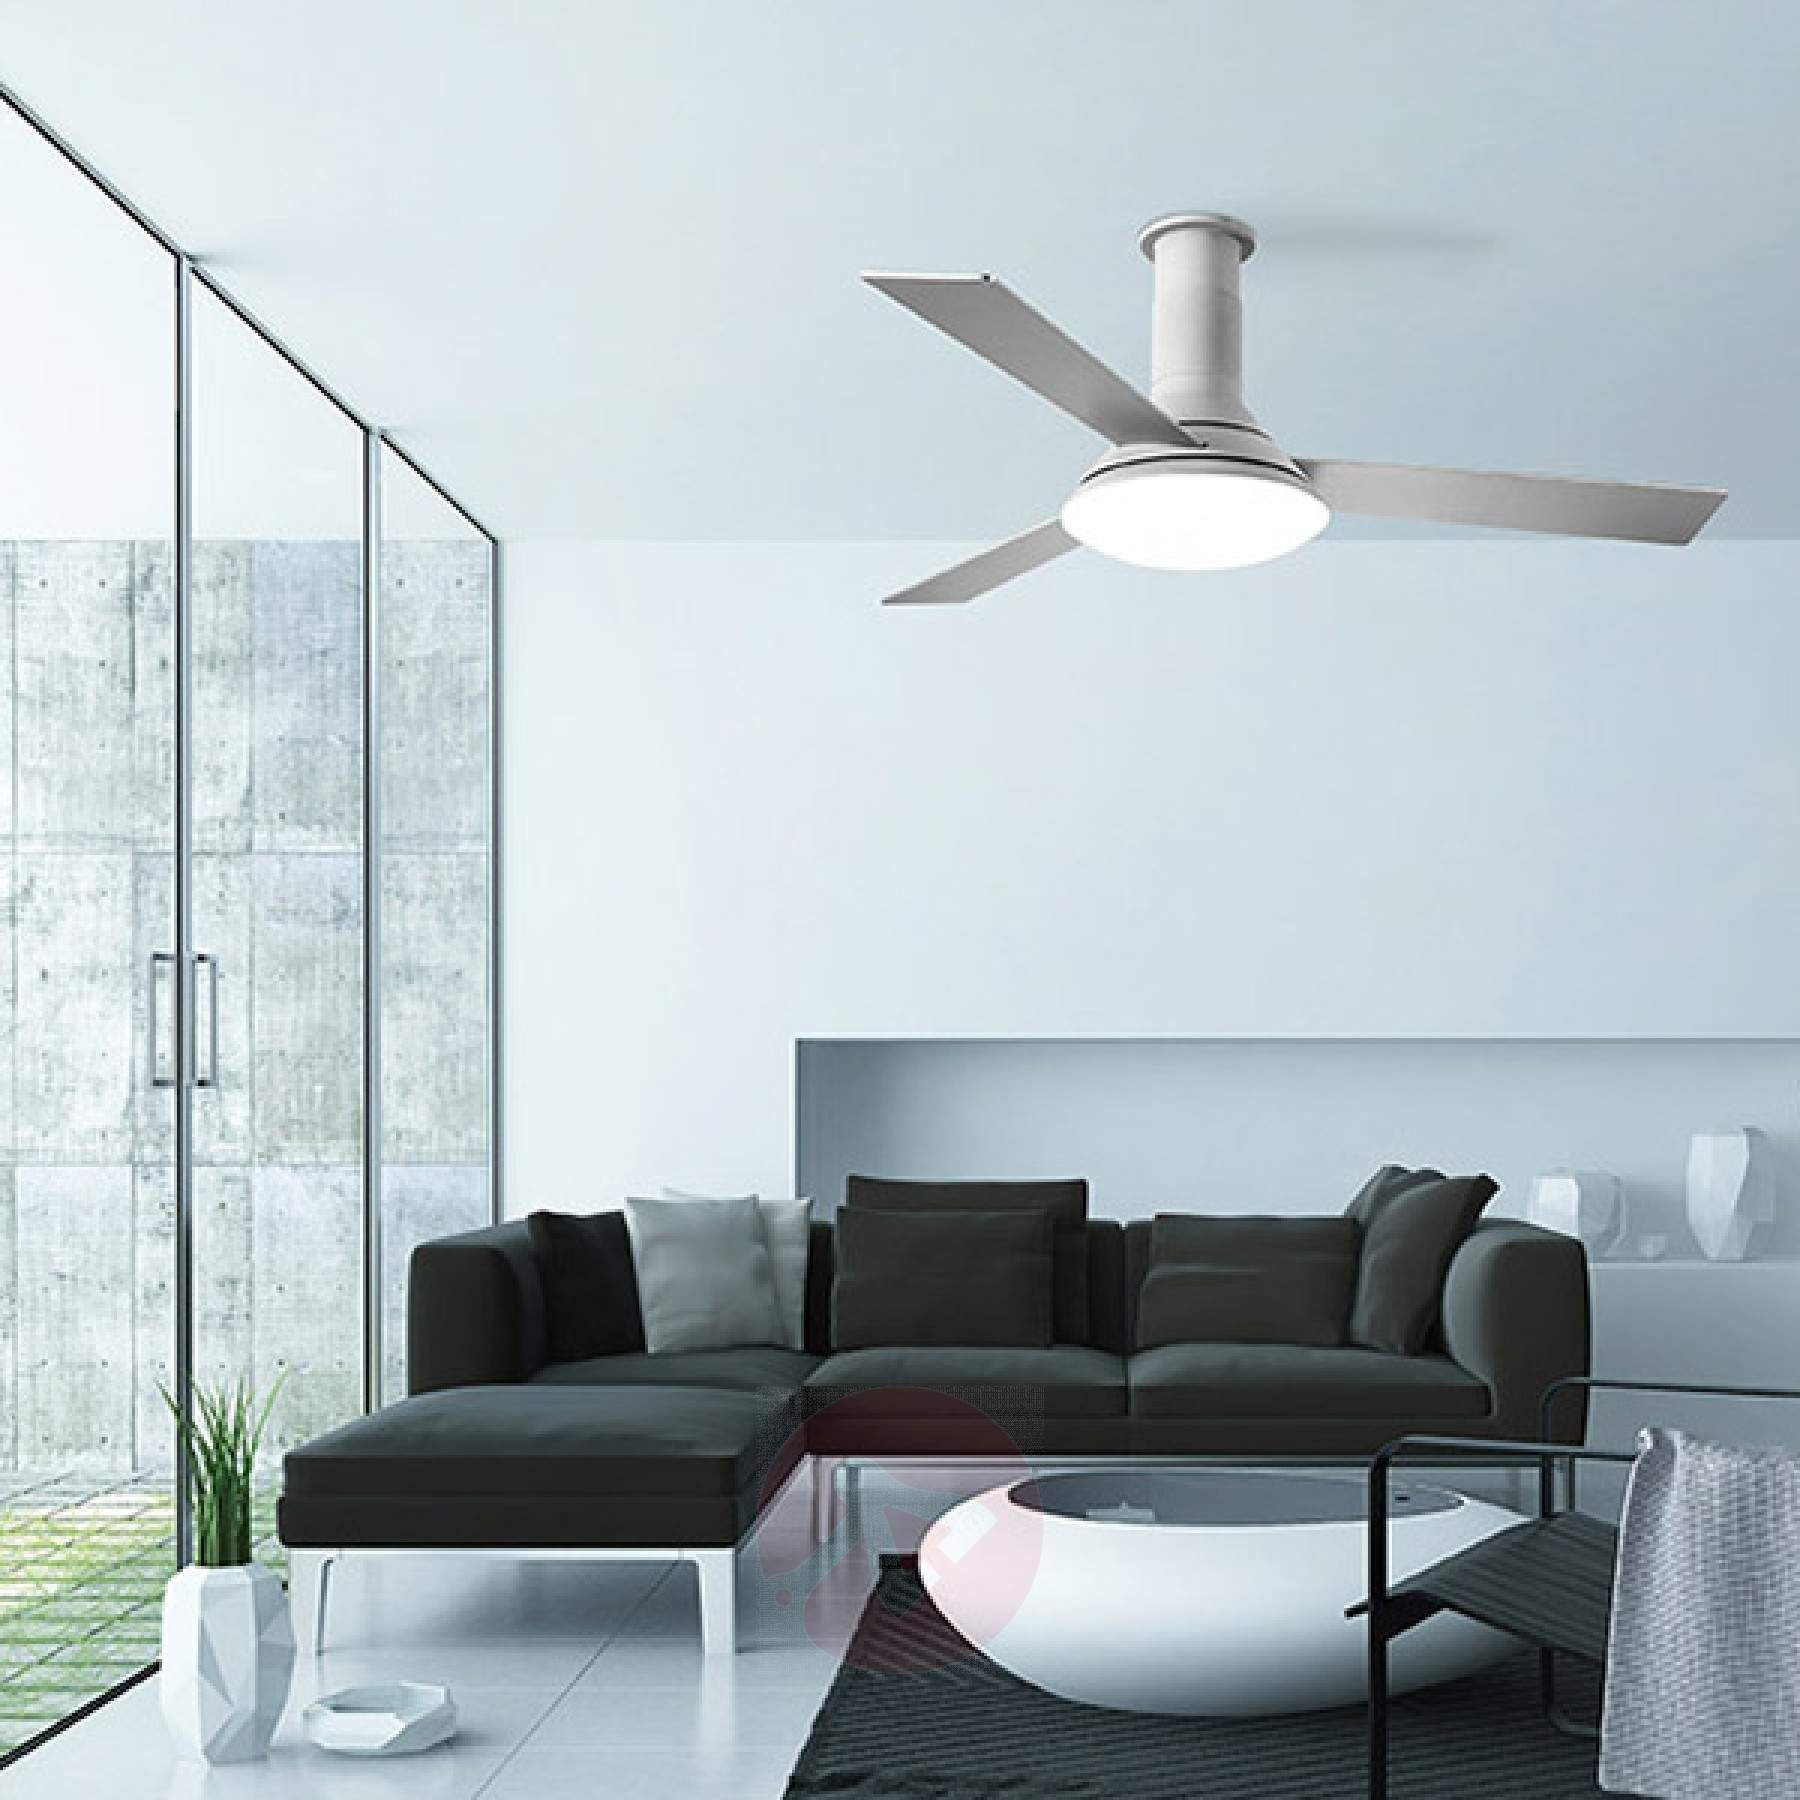 Silent Fan for Bedroom Elegant Lovely Aeratron Ceiling Fan Pics — Beautiful Furniture Home